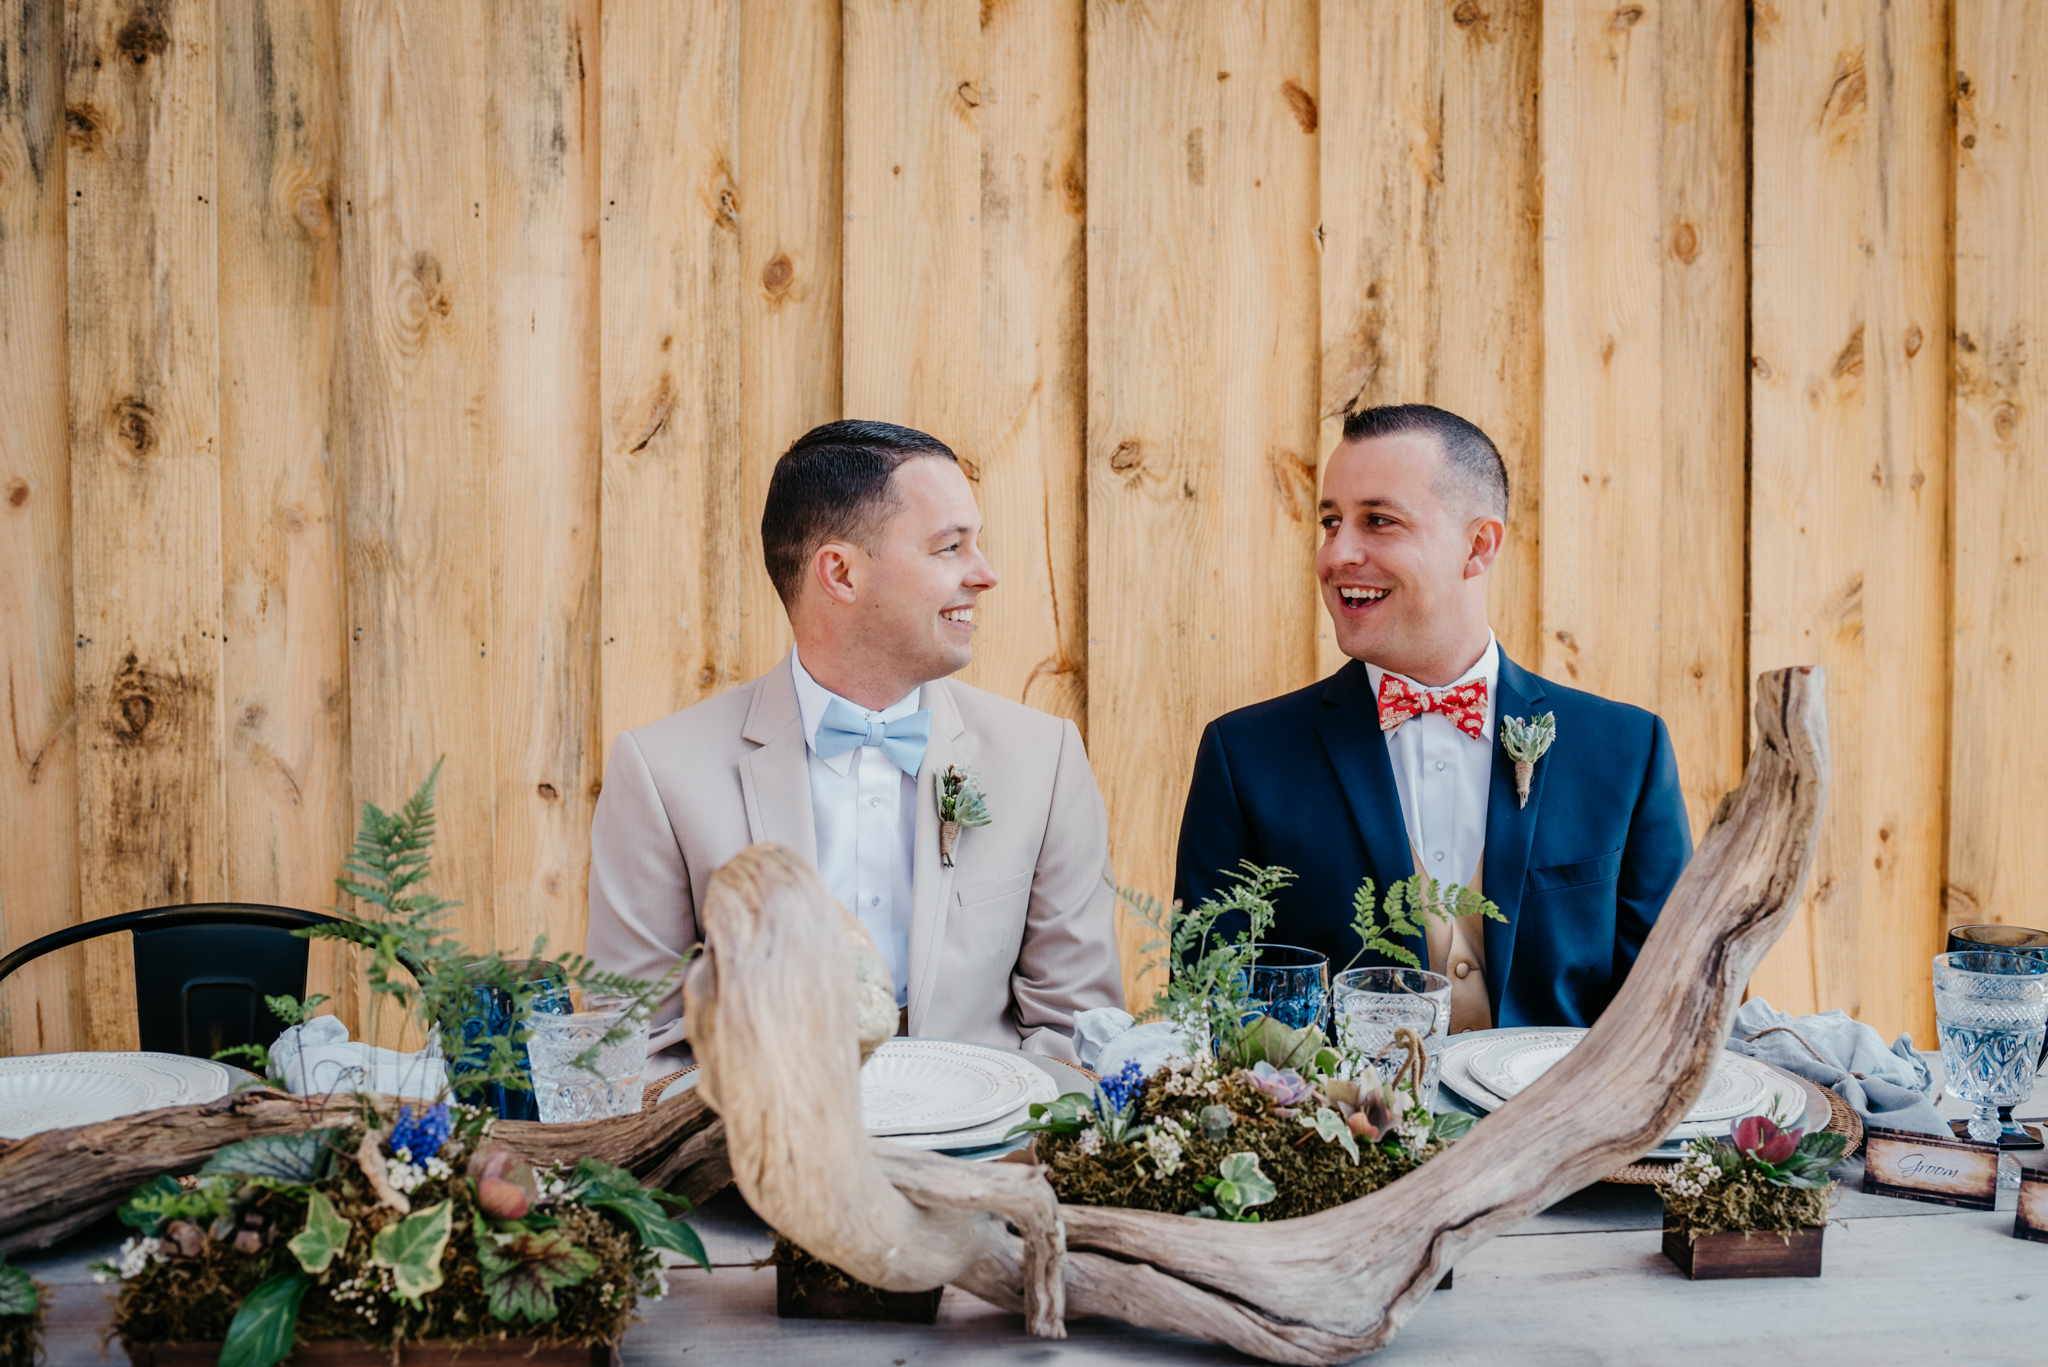 The grooms sit at the farm table during their styled engagement session with Rose Trail Images at Windy Hill Farm near Raleigh, NC.